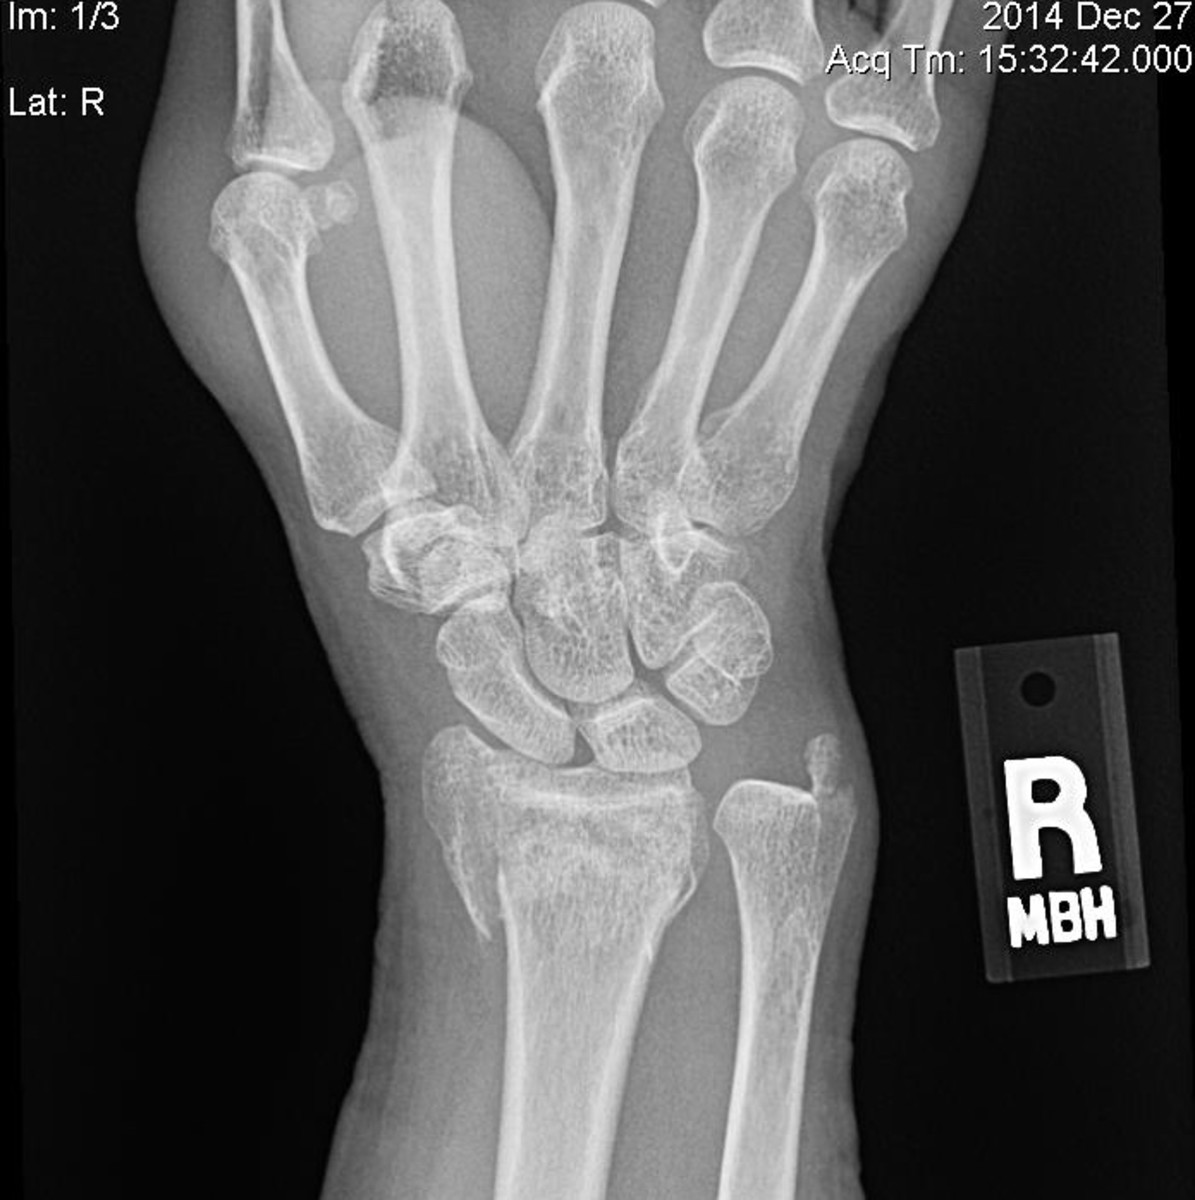 As you can see, my ulna is crushed and my radius is dislocated.